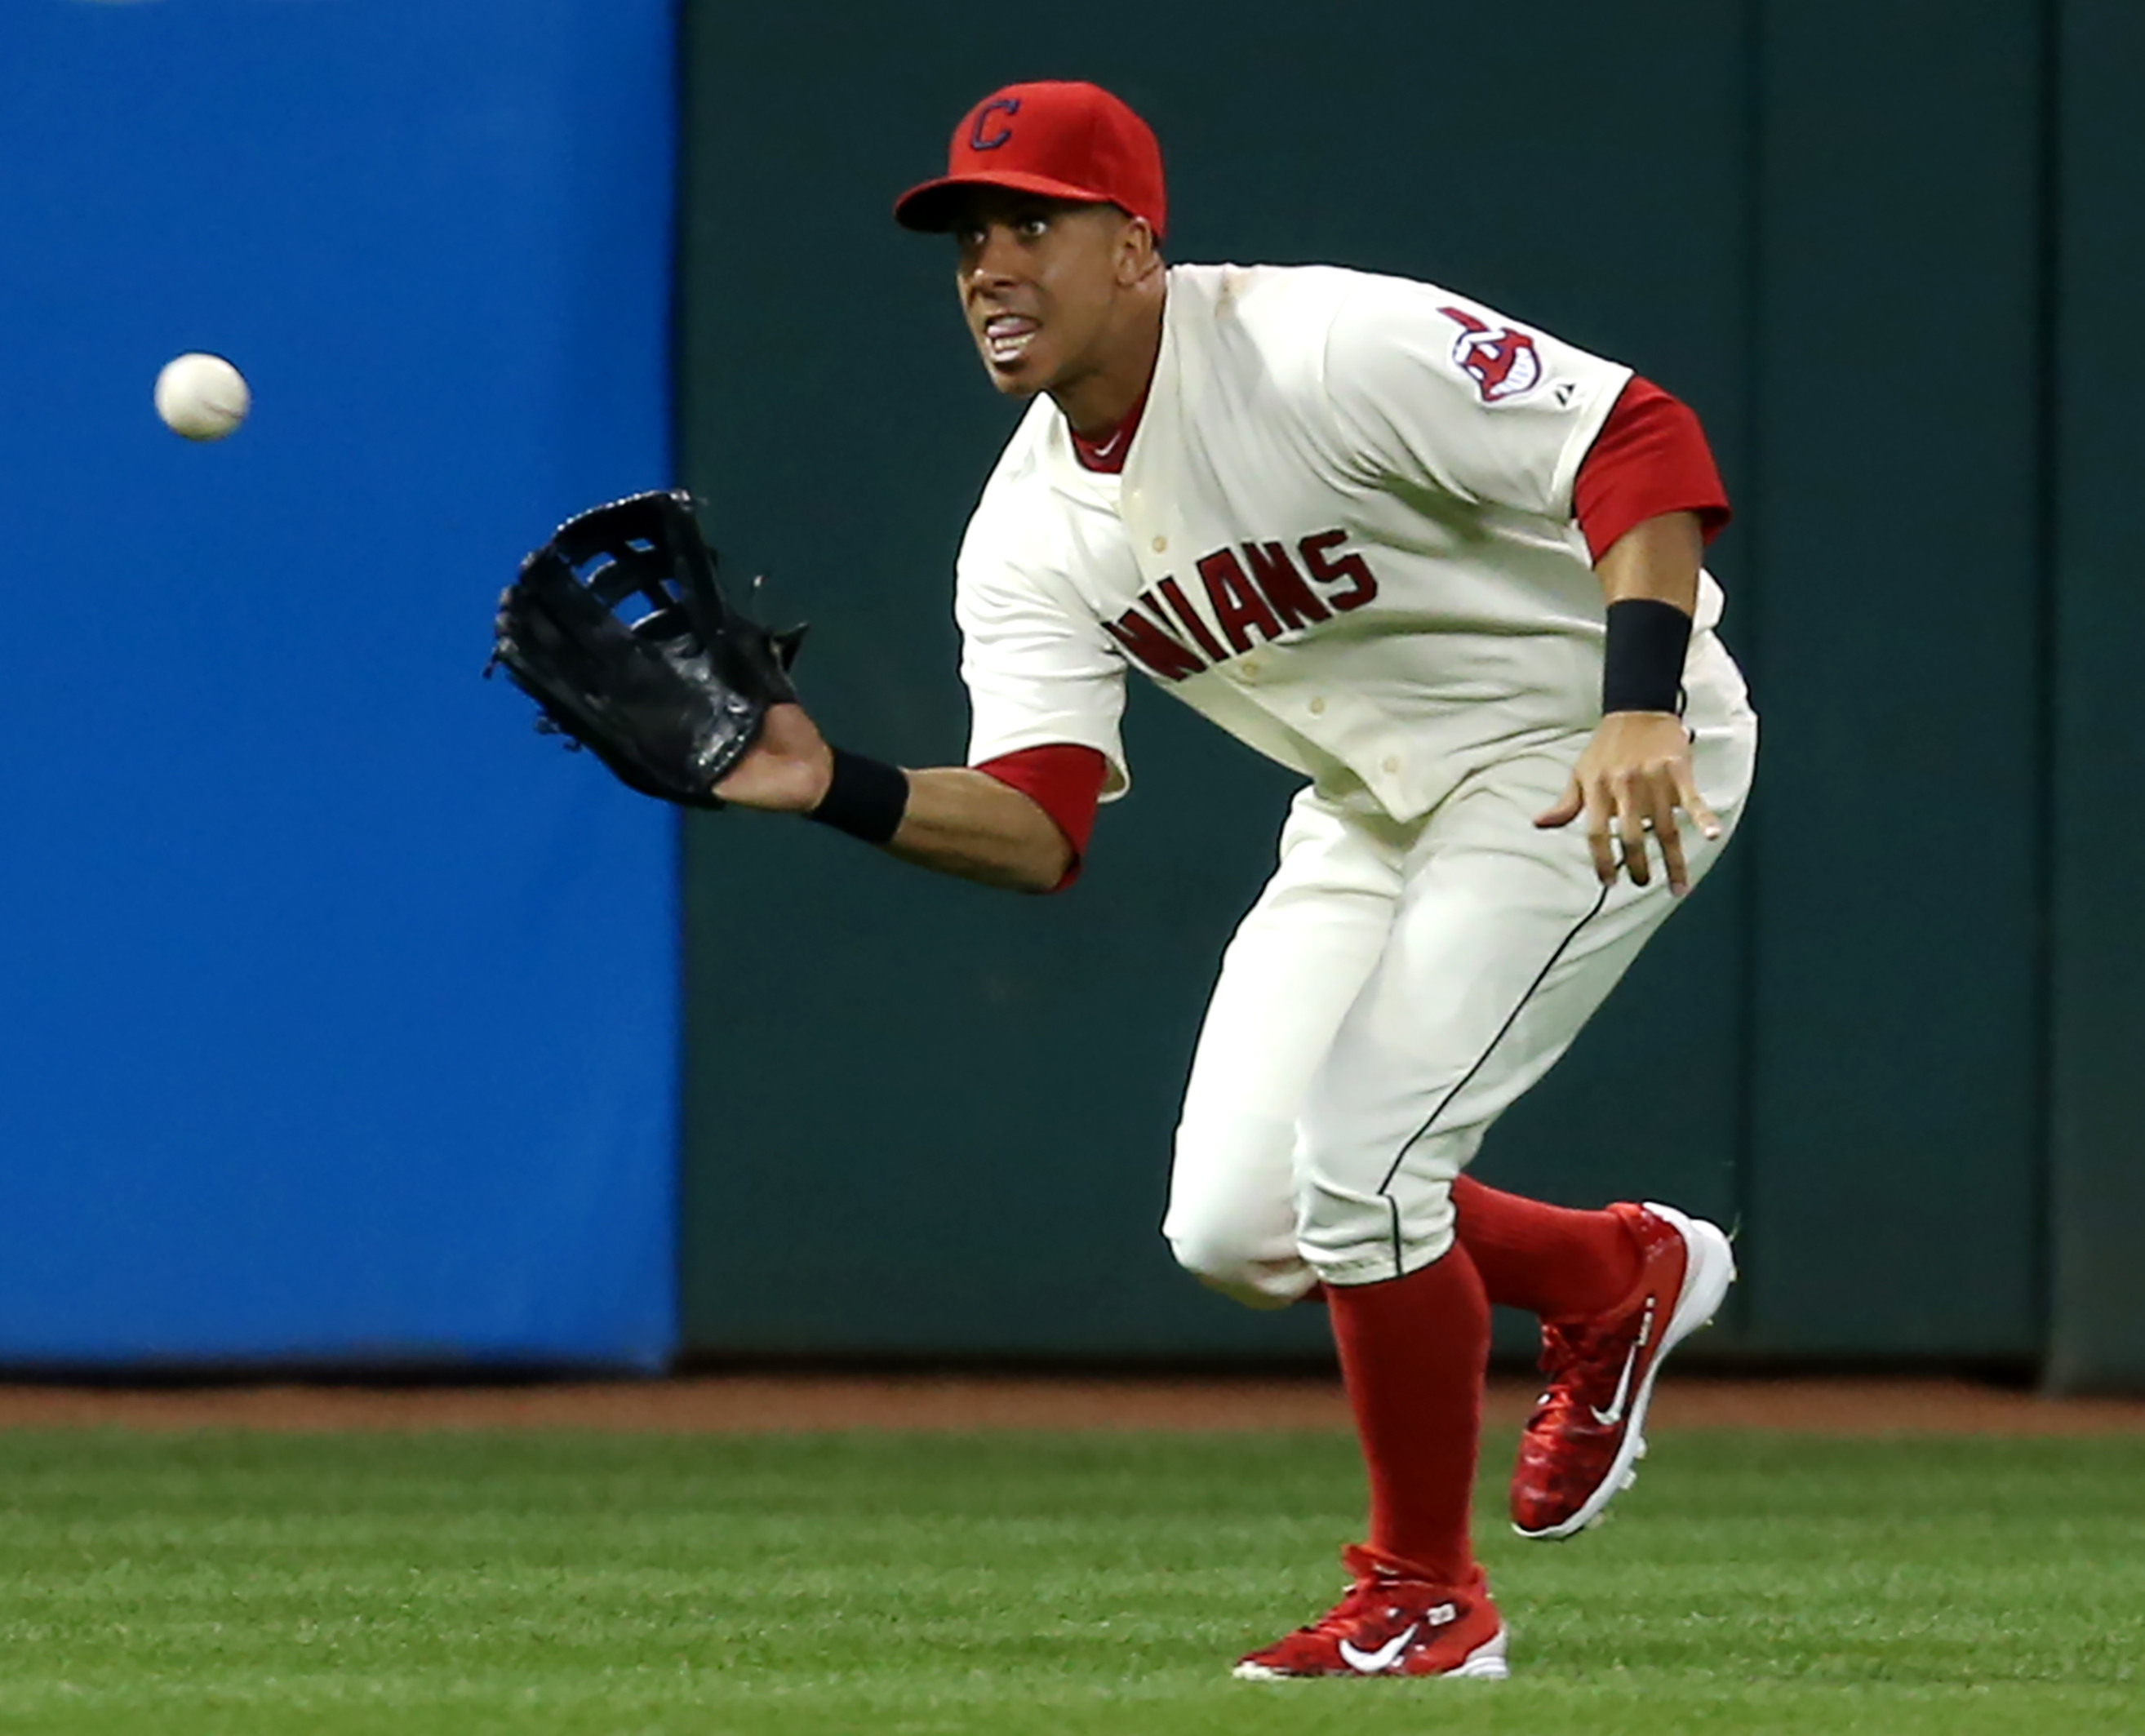 FILE - In this Sept. 19, 2015 file photo, Cleveland Indians outfielder Michael Brantley makes a running catch to put out Chicago White Sox's Micah Johnson during the third inning of a baseball game, in Cleveland. The Indians have placed Brantley on the 15